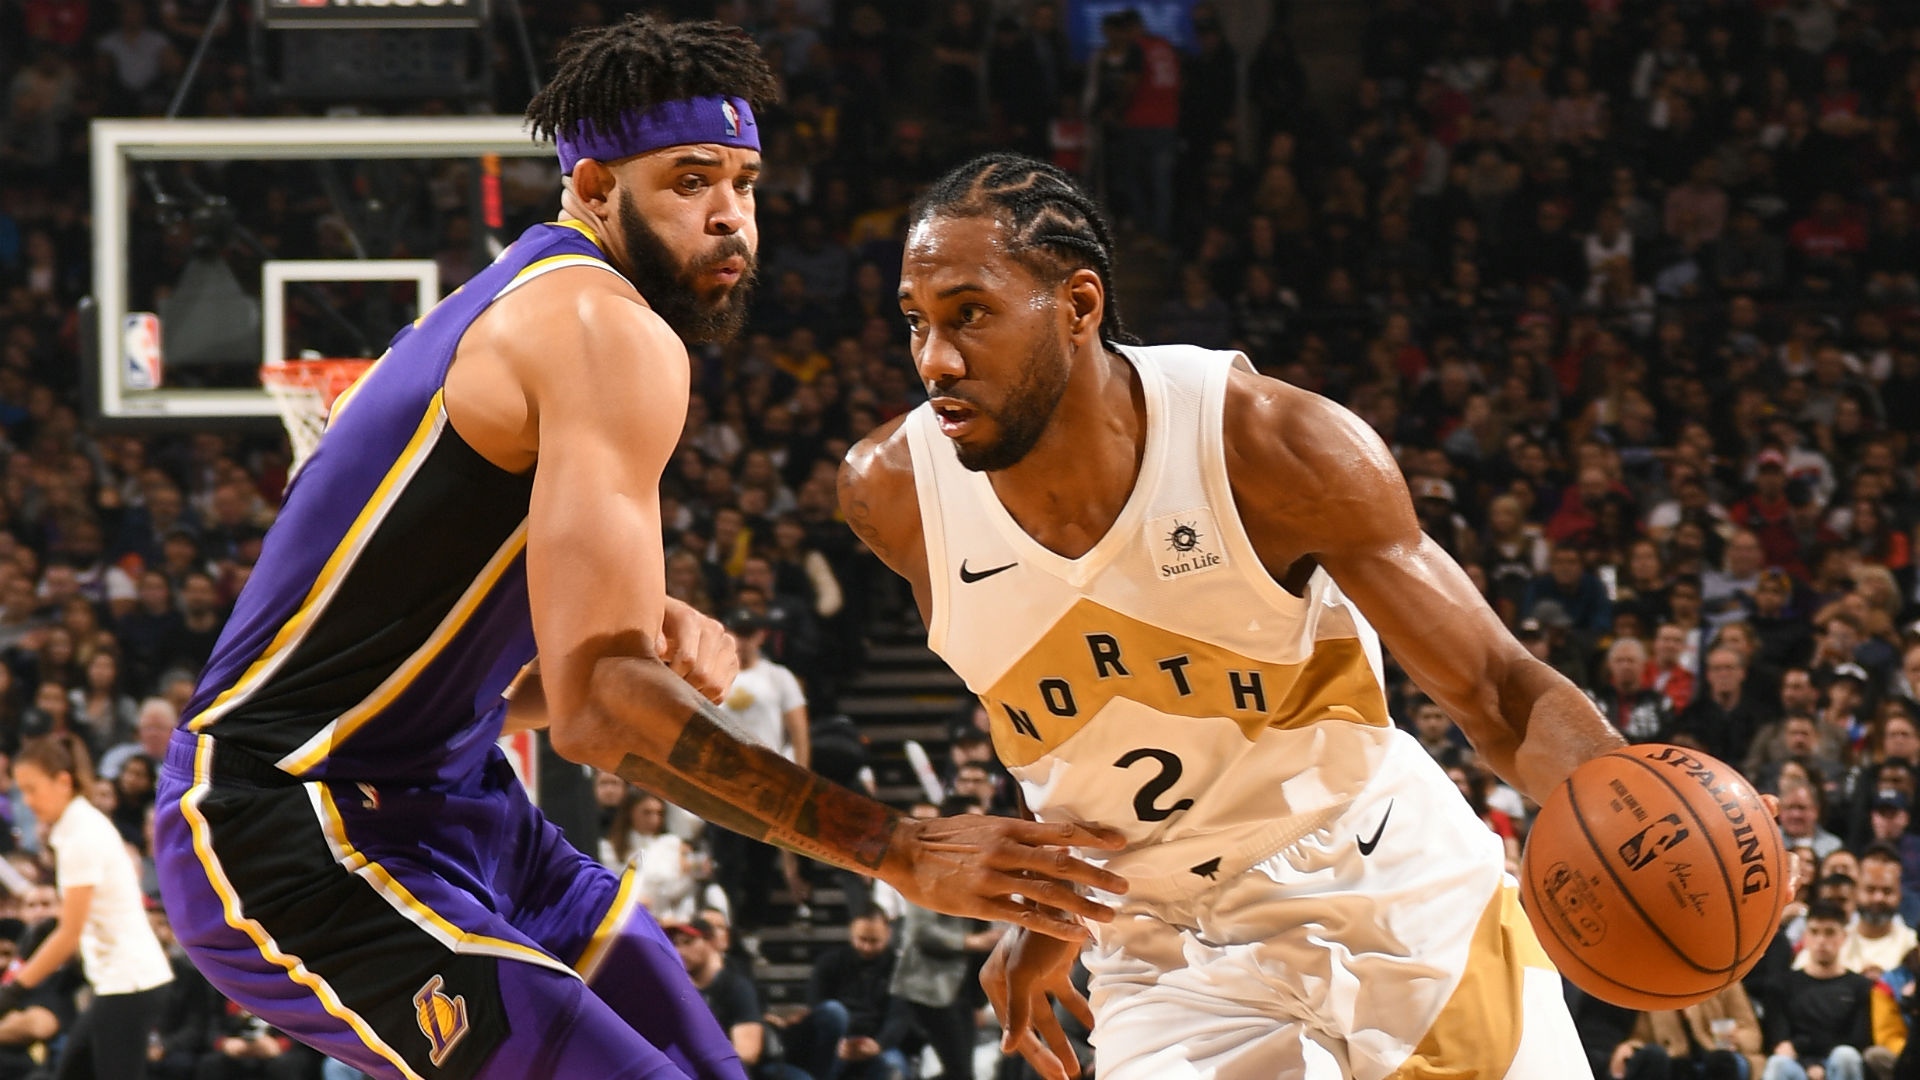 c7dd2d1b0cf Kawhi Leonard holds Toronto Raptors record for most games as leading scorer  in first season with franchise | NBA.com Canada | The official site of the  NBA. );